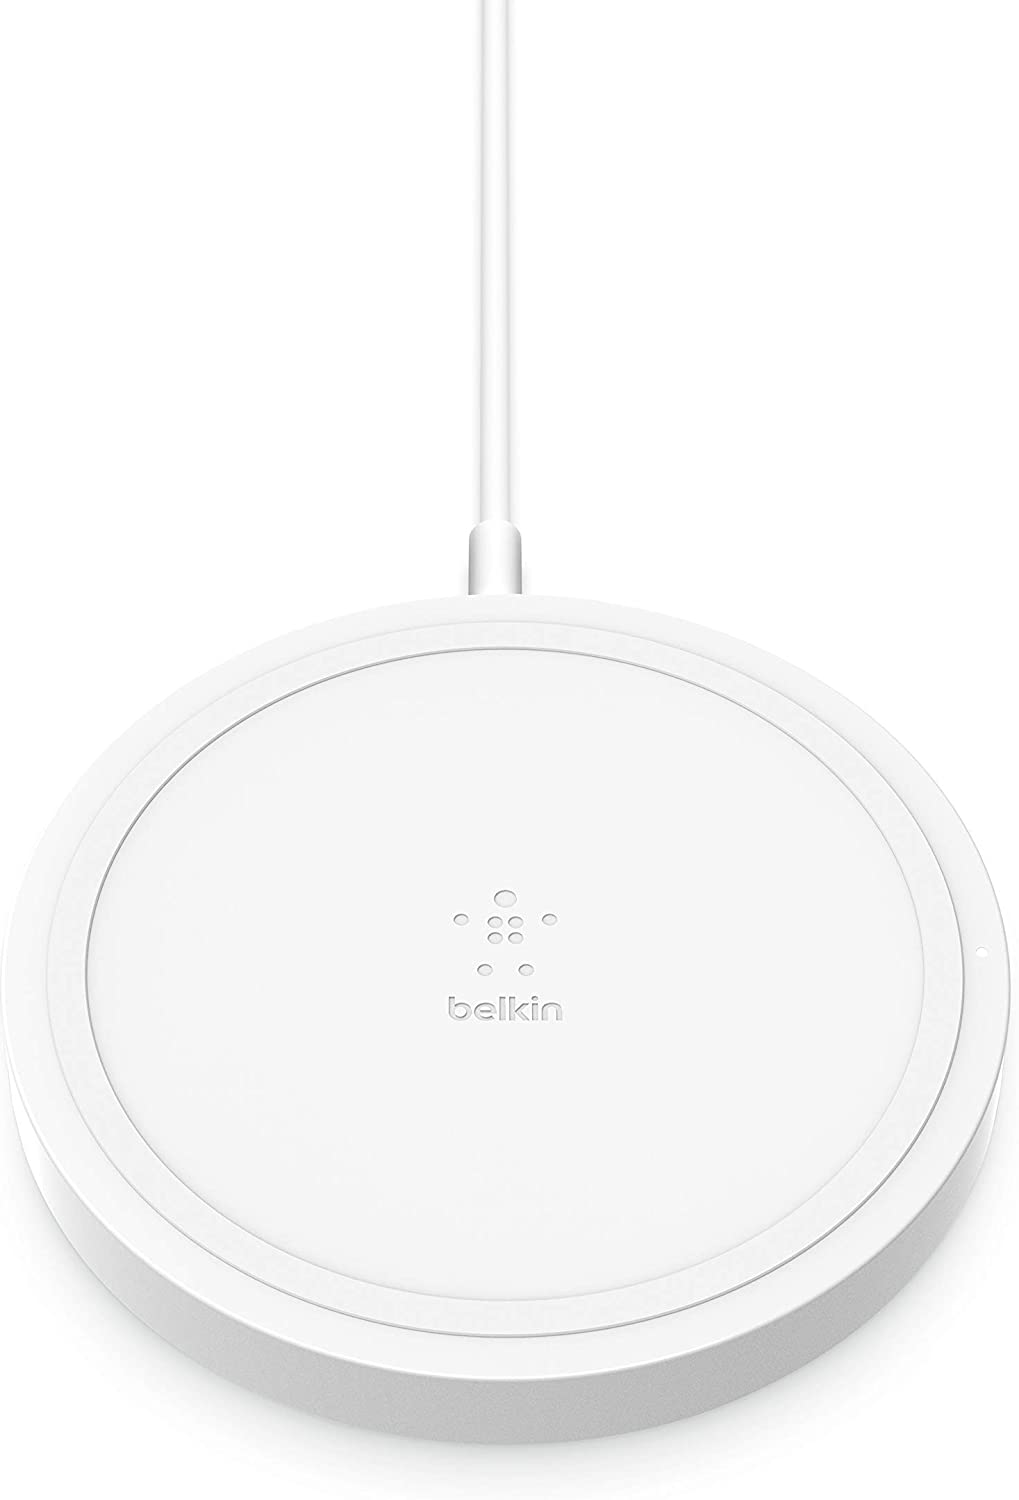 Belkin Wireless Charger, BoostUp 5W Charging Pad Qi-Certified Compatible with iPhone 12, 12 Pro, 12 Pro Max, Mini 11, SE, AirPods, Galaxy, Note, and All Qi Enabled Devices, White